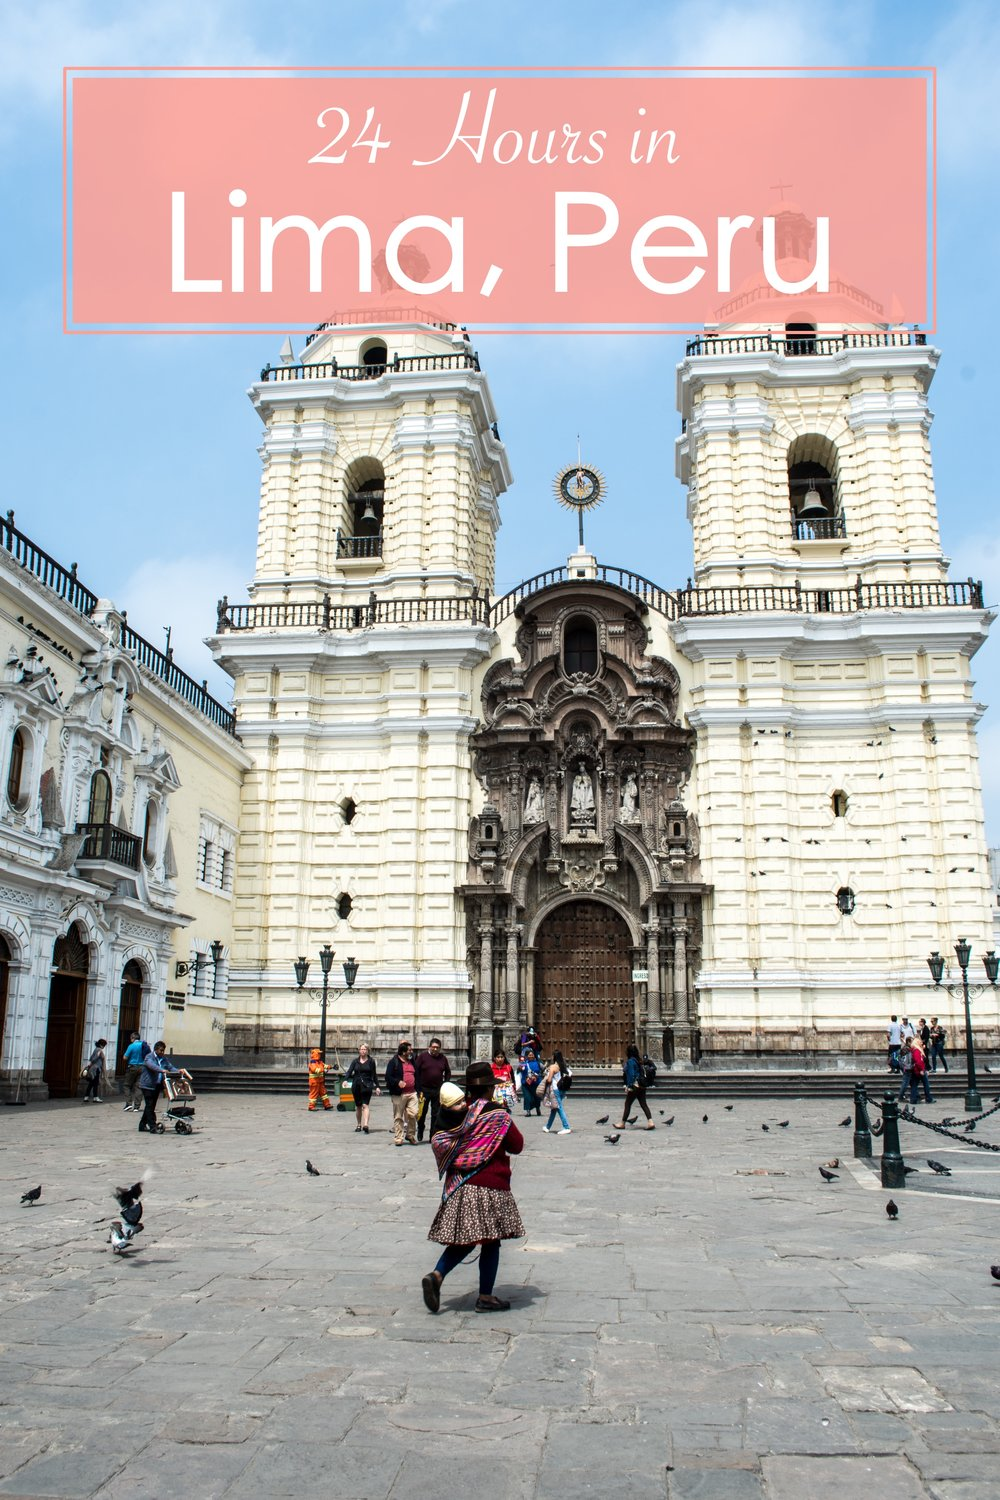 How to Spend 24 Hours in Lima, Peru. Lima is a lively city with amazing restaurants and nightlife, but also with plenty of parks and a long stretch of beach that offers visitors a chance to relax. One Day is all you need to explore the main sights and take in the Peruvian capital. #peru #lima #24hours #travelguide #southamerica